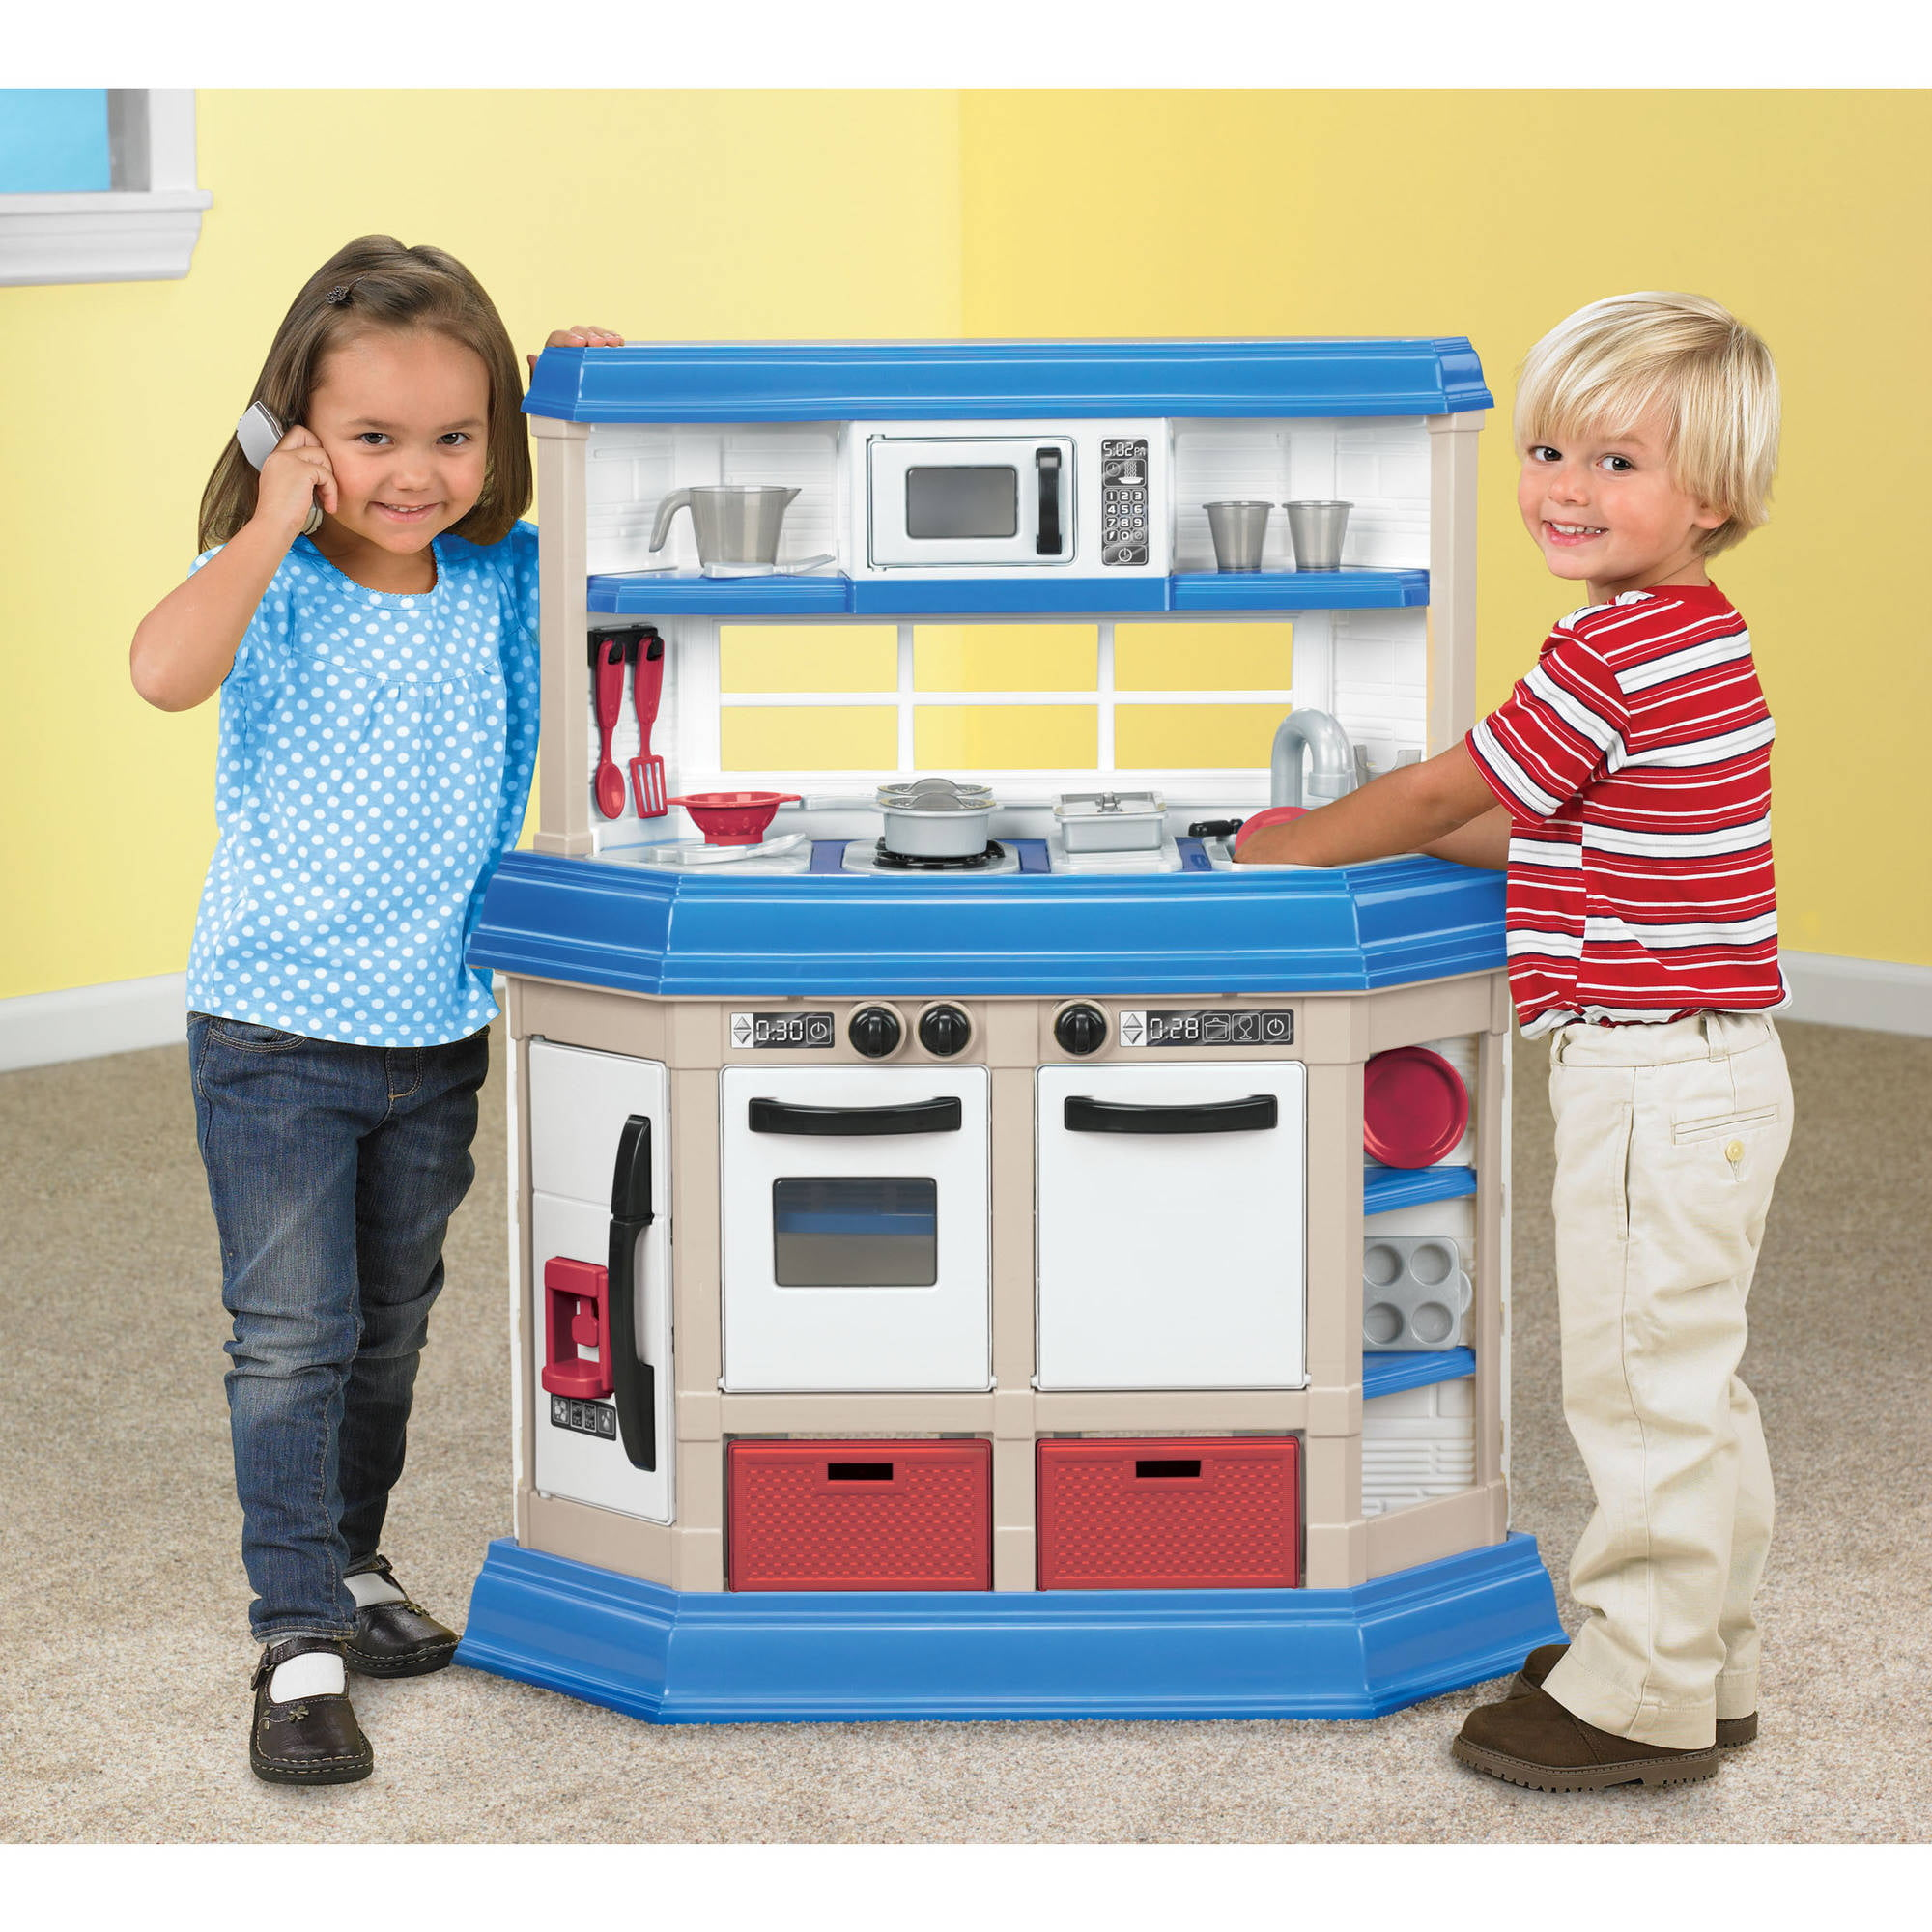 Deluxe Modern Kitchen Battery Operated Toy Kitchen Playset Perfect